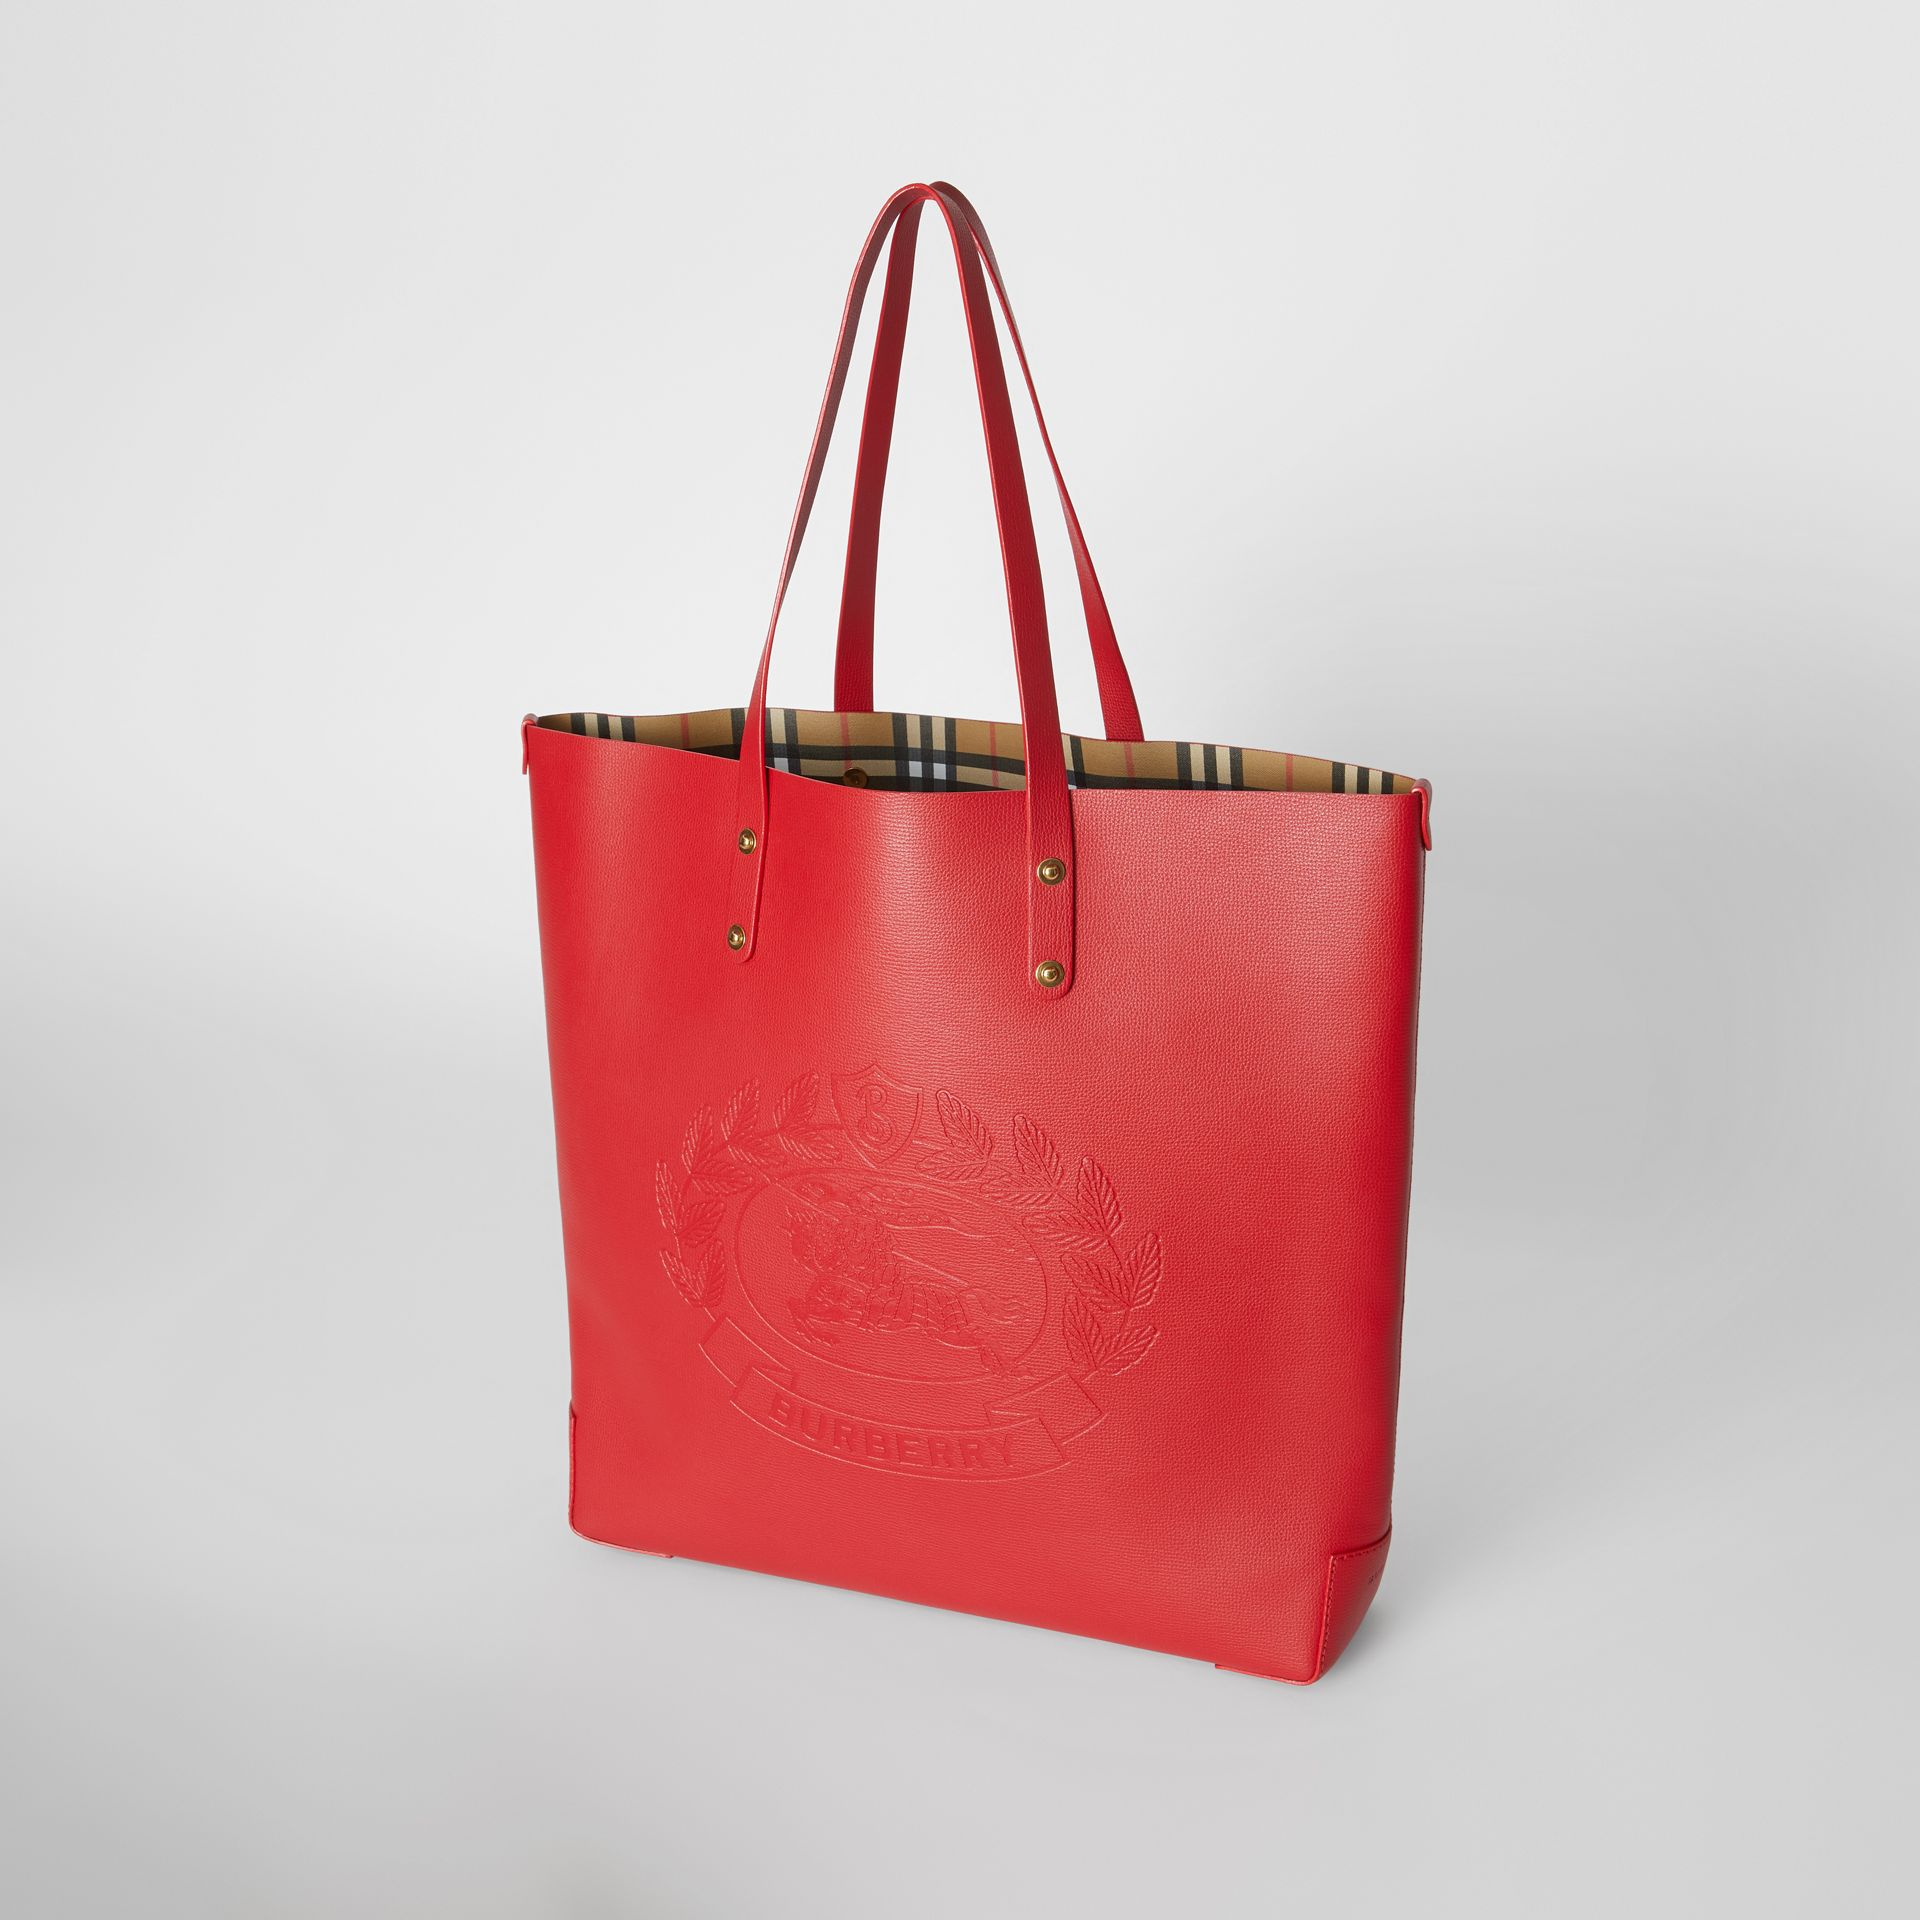 Embossed Crest Leather Tote in Rust Red - Women | Burberry - gallery image 3